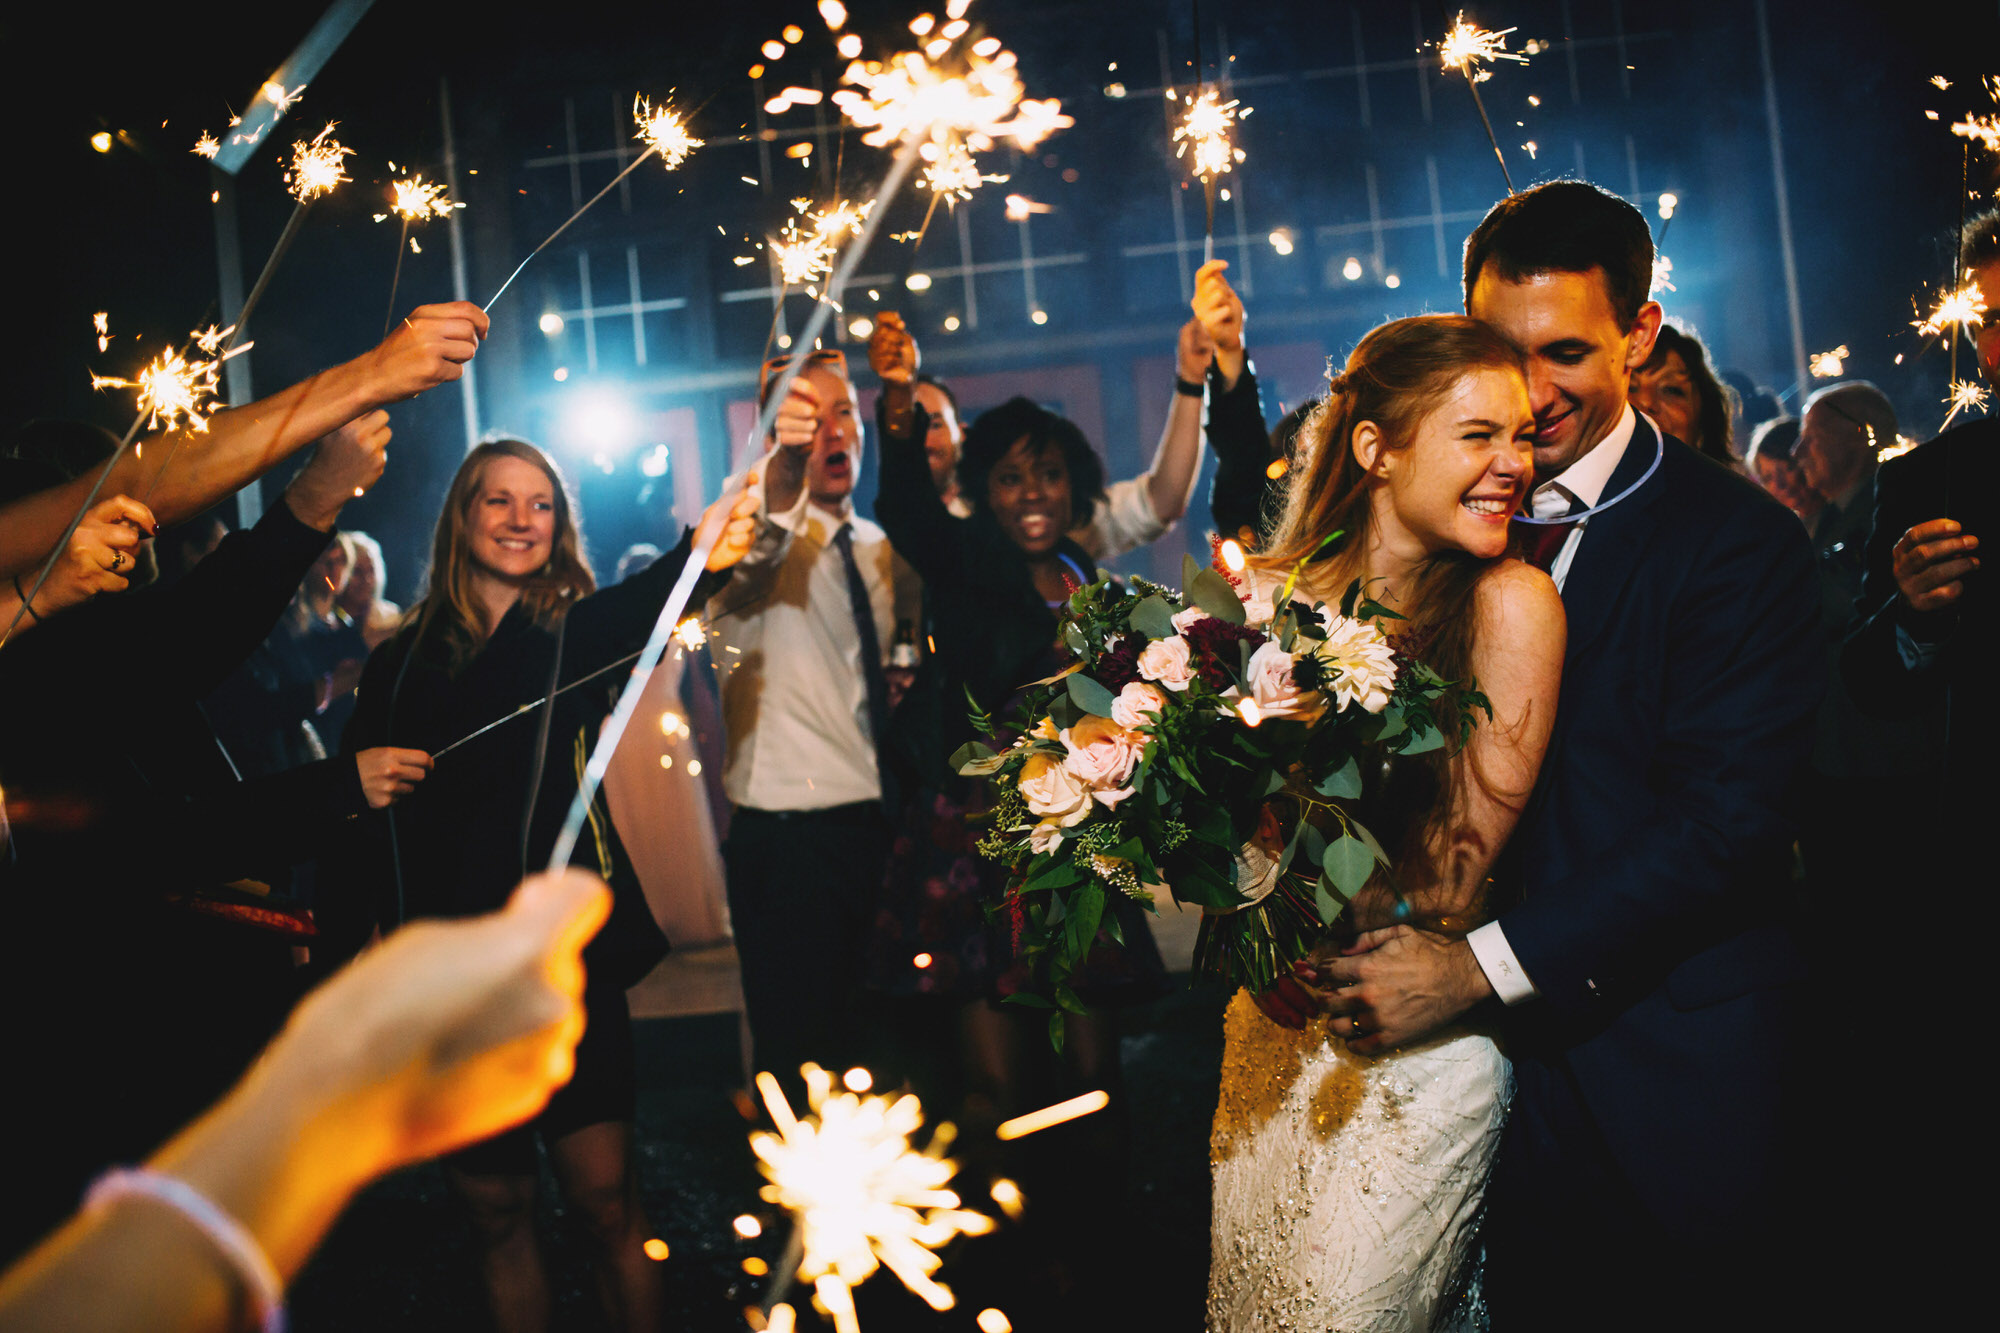 Bride and groom embrace amidst sparklers - photo by Ken Pak